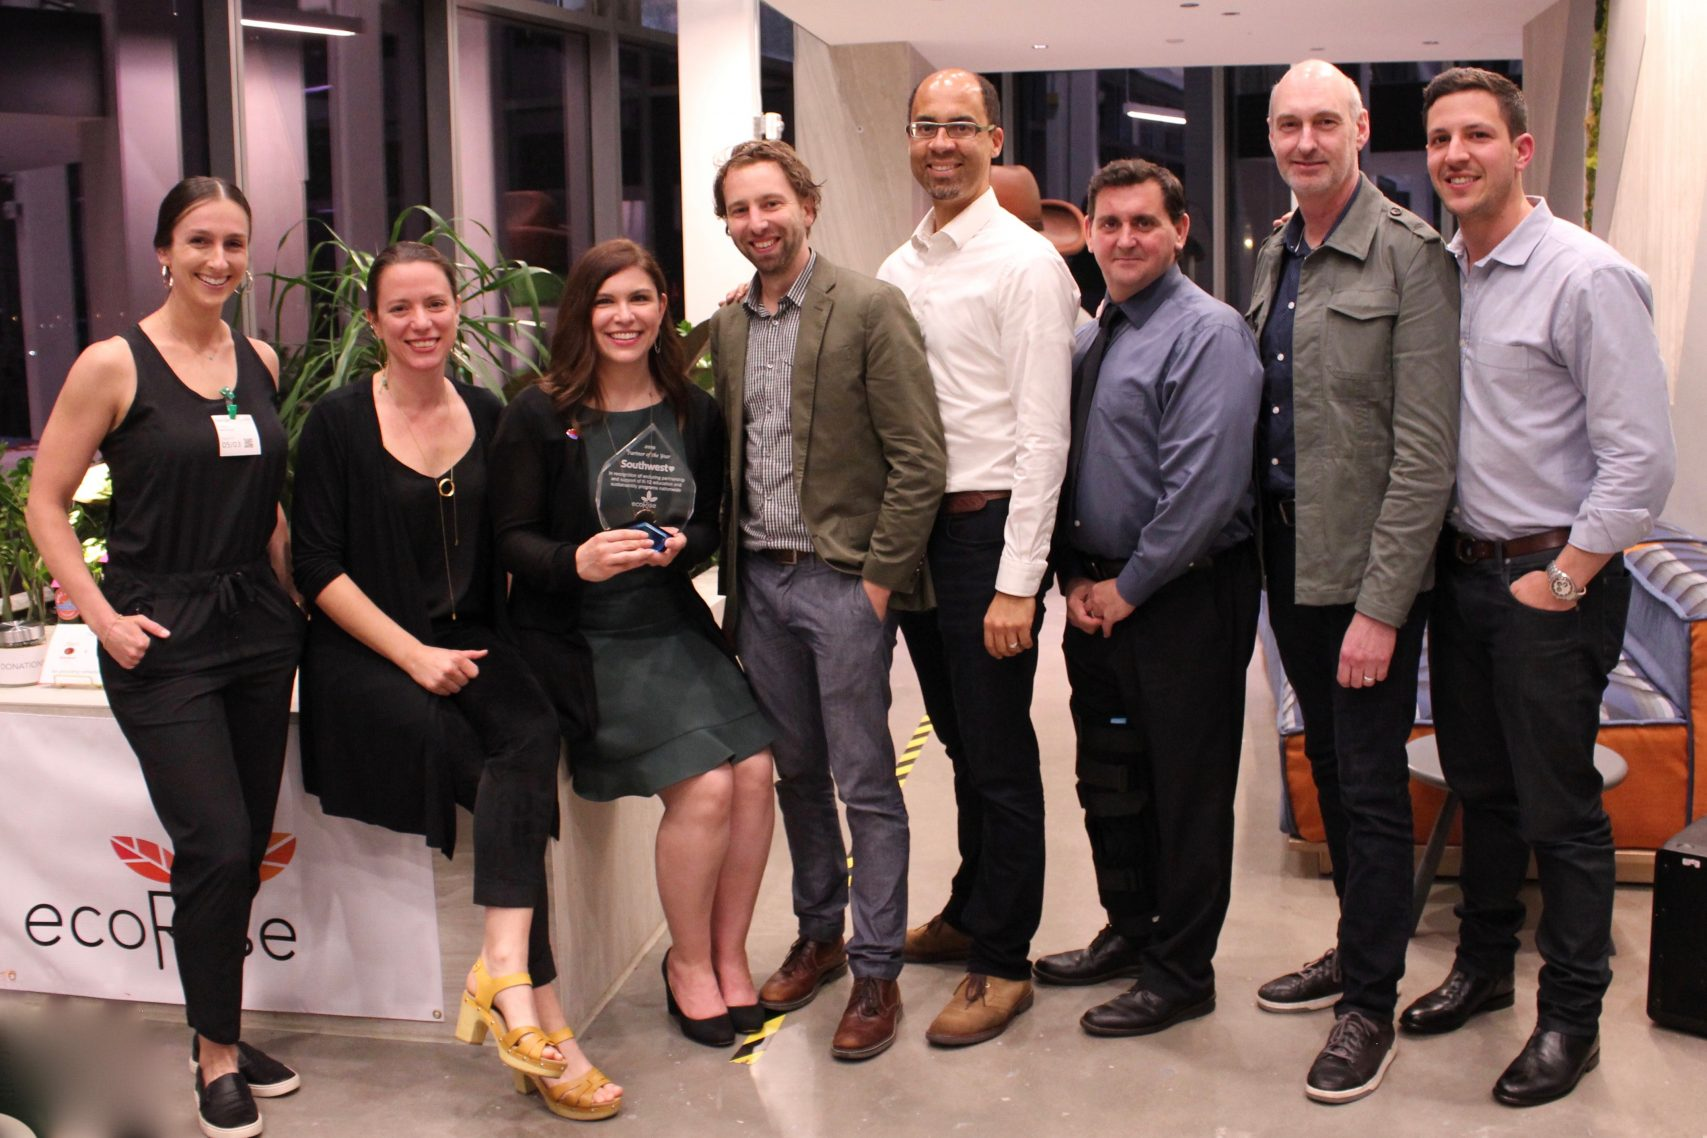 Southwest Airlines Partner of the Year Award